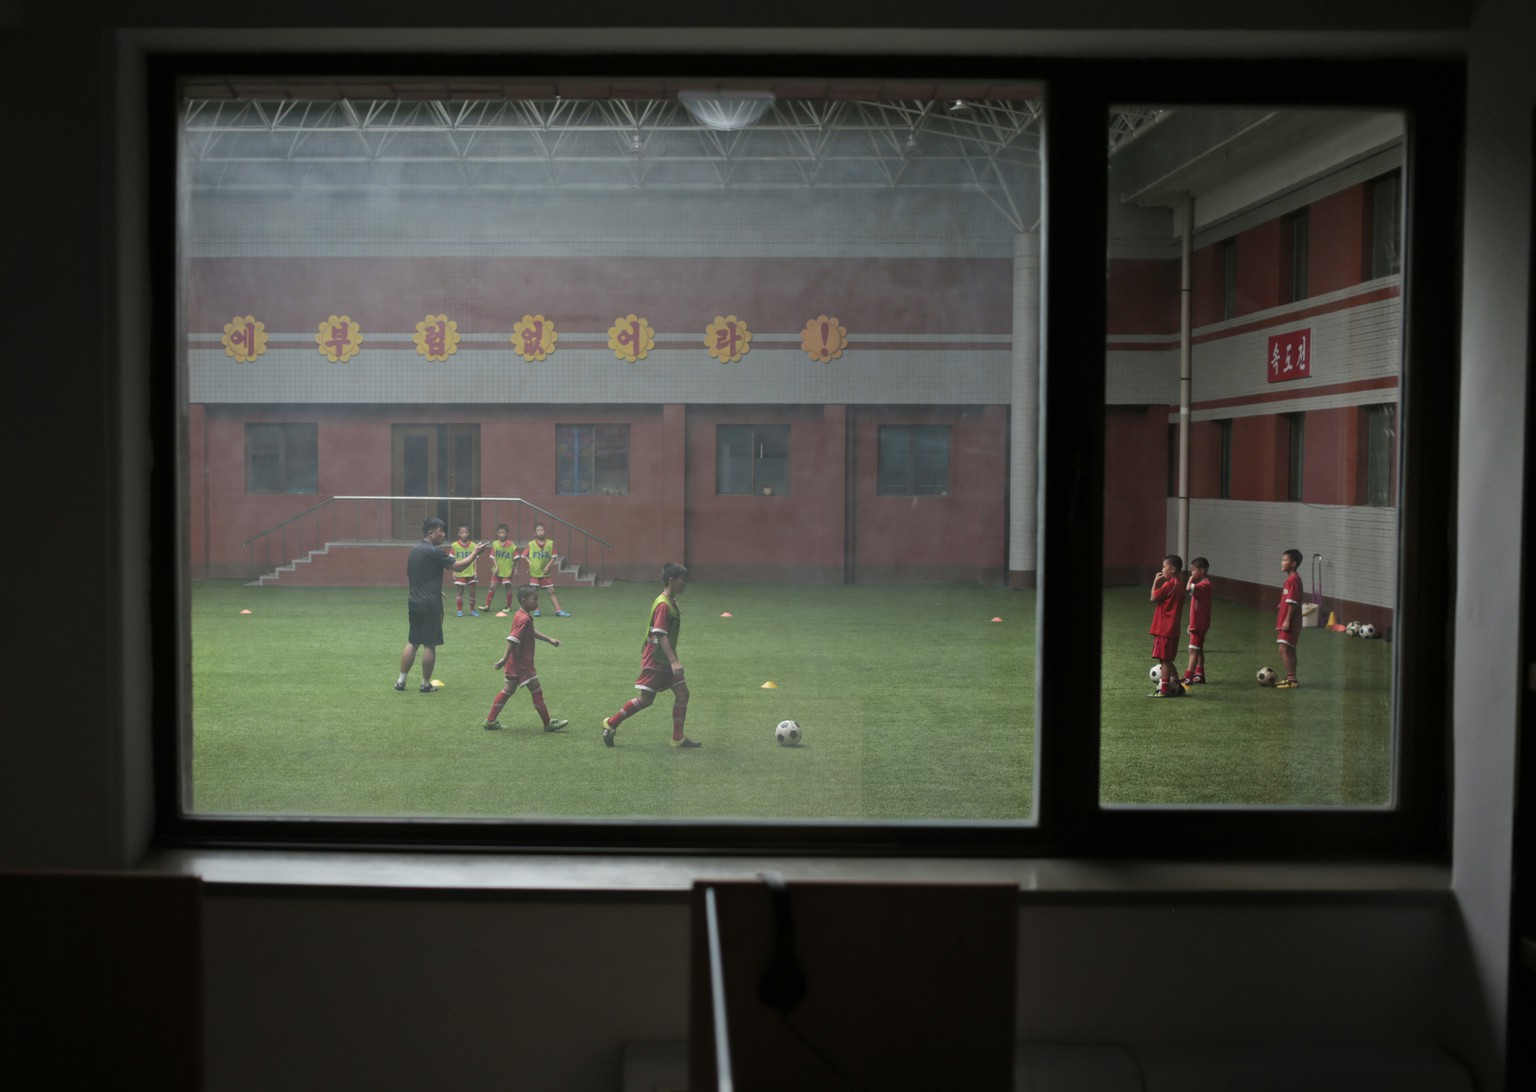 Children practice soccer at Pyongyang International Football School in Pyongyang, North Korea, Wednesday, Aug. 24, 2016. North Korea has poured funds into the development and training of promising athletes over the past several years in an effort to fulfill one of leader Kim Jong Un's primary goals to become a country be reckoned with on the global sports stage. (AP Photo/Dita Alangkara)